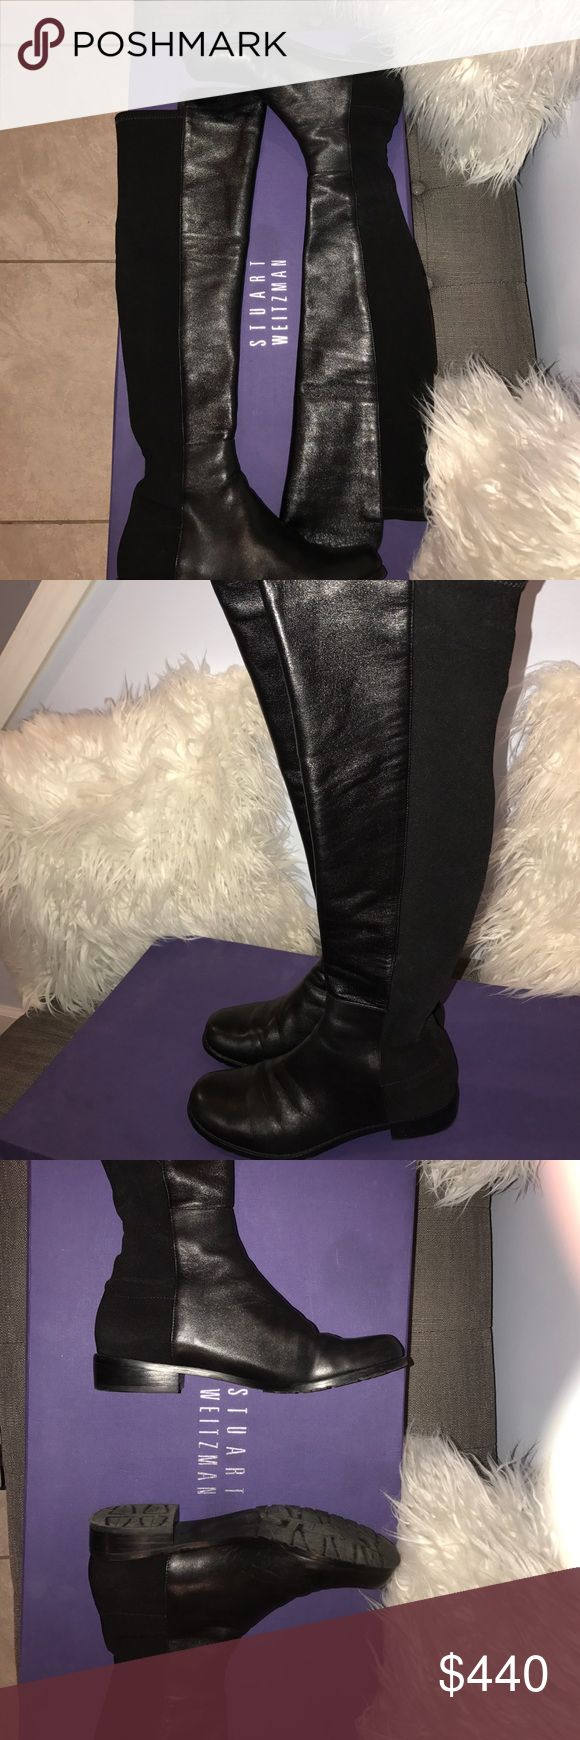 Stuart Weitzman 5050 Boot Classic Black Nappa Leather boot , authentic and very comfortable, comes w/ box Stuart Weitzman Shoes